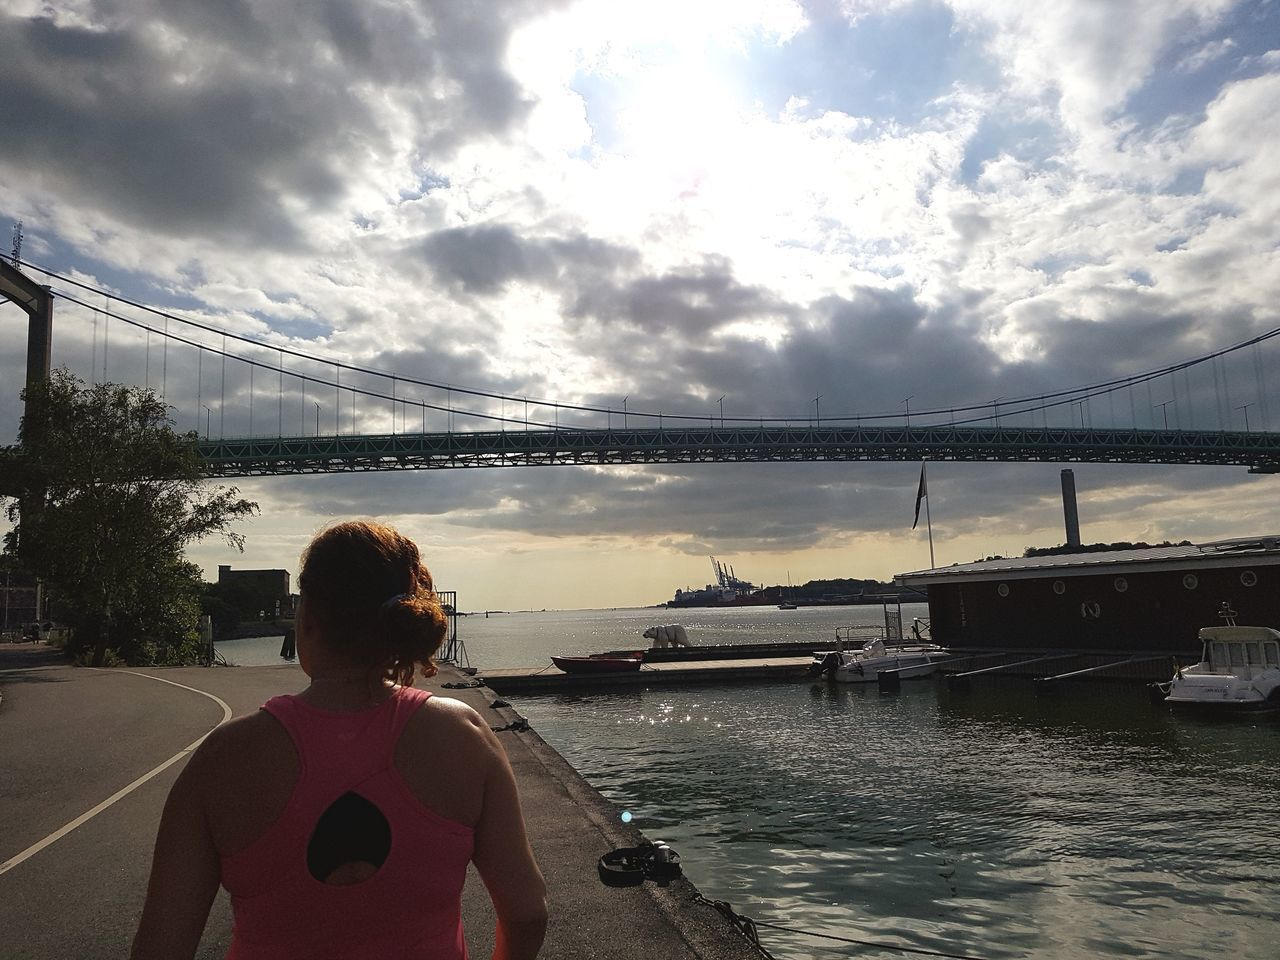 rear view, cloud - sky, bridge - man made structure, sky, real people, one person, water, connection, river, transportation, women, lifestyles, built structure, architecture, outdoors, leisure activity, suspension bridge, day, standing, sunset, nautical vessel, nature, adult, people